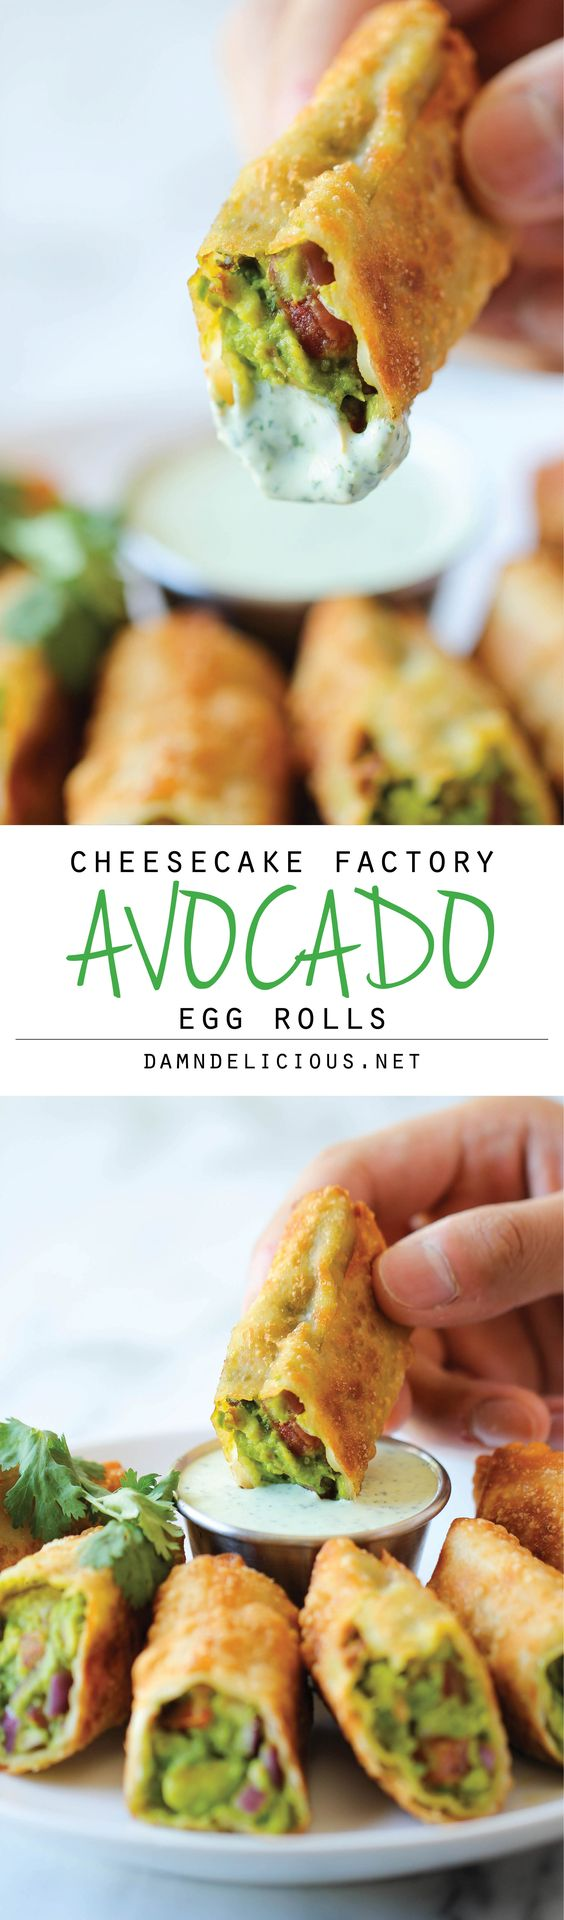 Cheesecake Factory Avocado Egg Rolls Recipe via damn delicious - The Best Easy Party Appetizers and Finger Foods Recipes - Quick family friendly snacks for Holidays, Tailgating and Super Bowl Parties! #horsdoeuvres #appetizers #fingerfoods #tapas #partyfood #christmaspartyfood #newyearsevepartyfood #newyearseve #tailgating #superbowl #easyappetizers